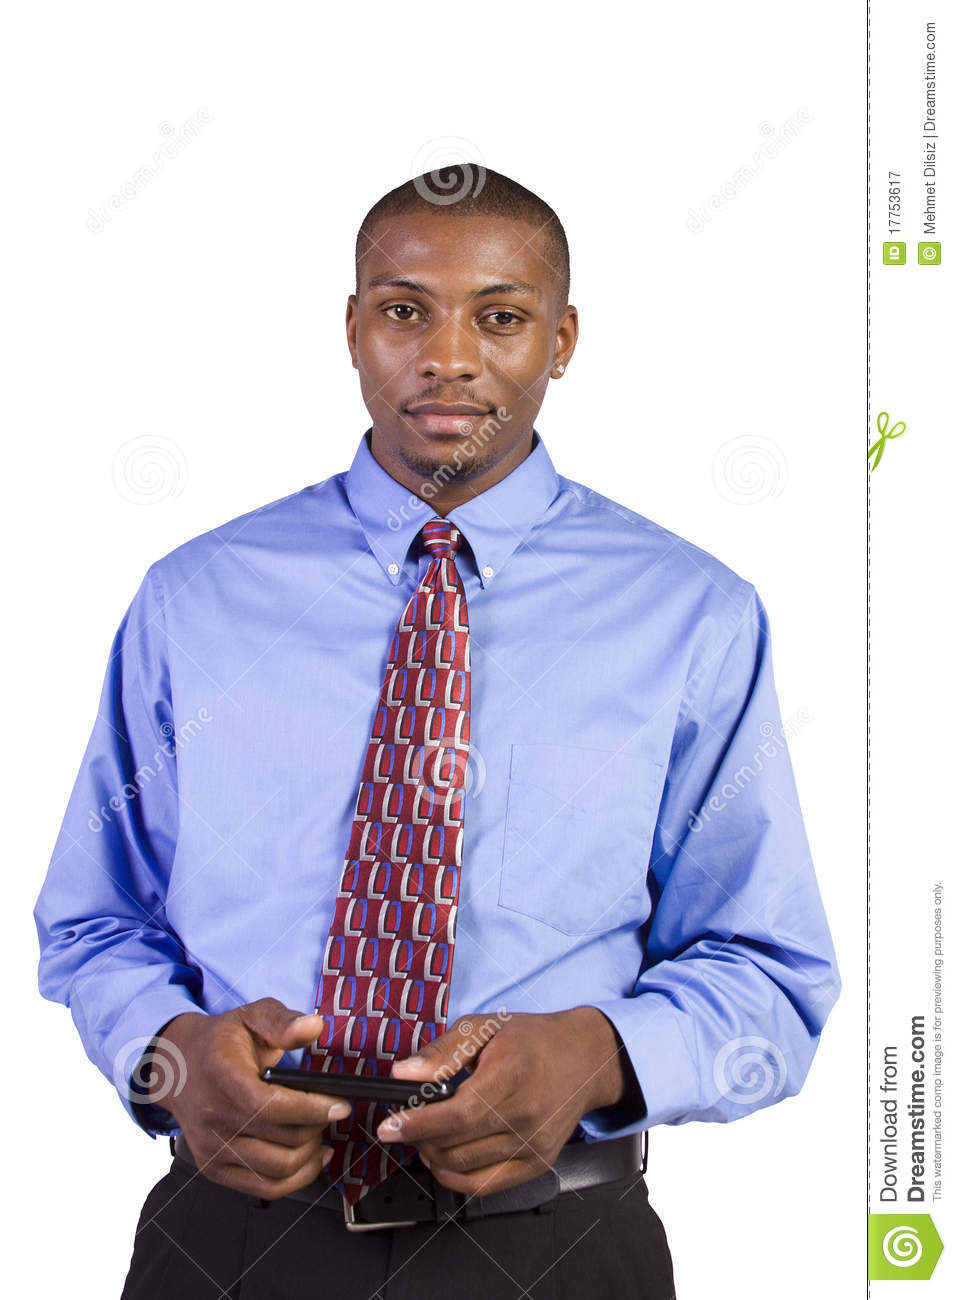 Man On Cell Phone : Casual black man texting on his cell phone royalty free